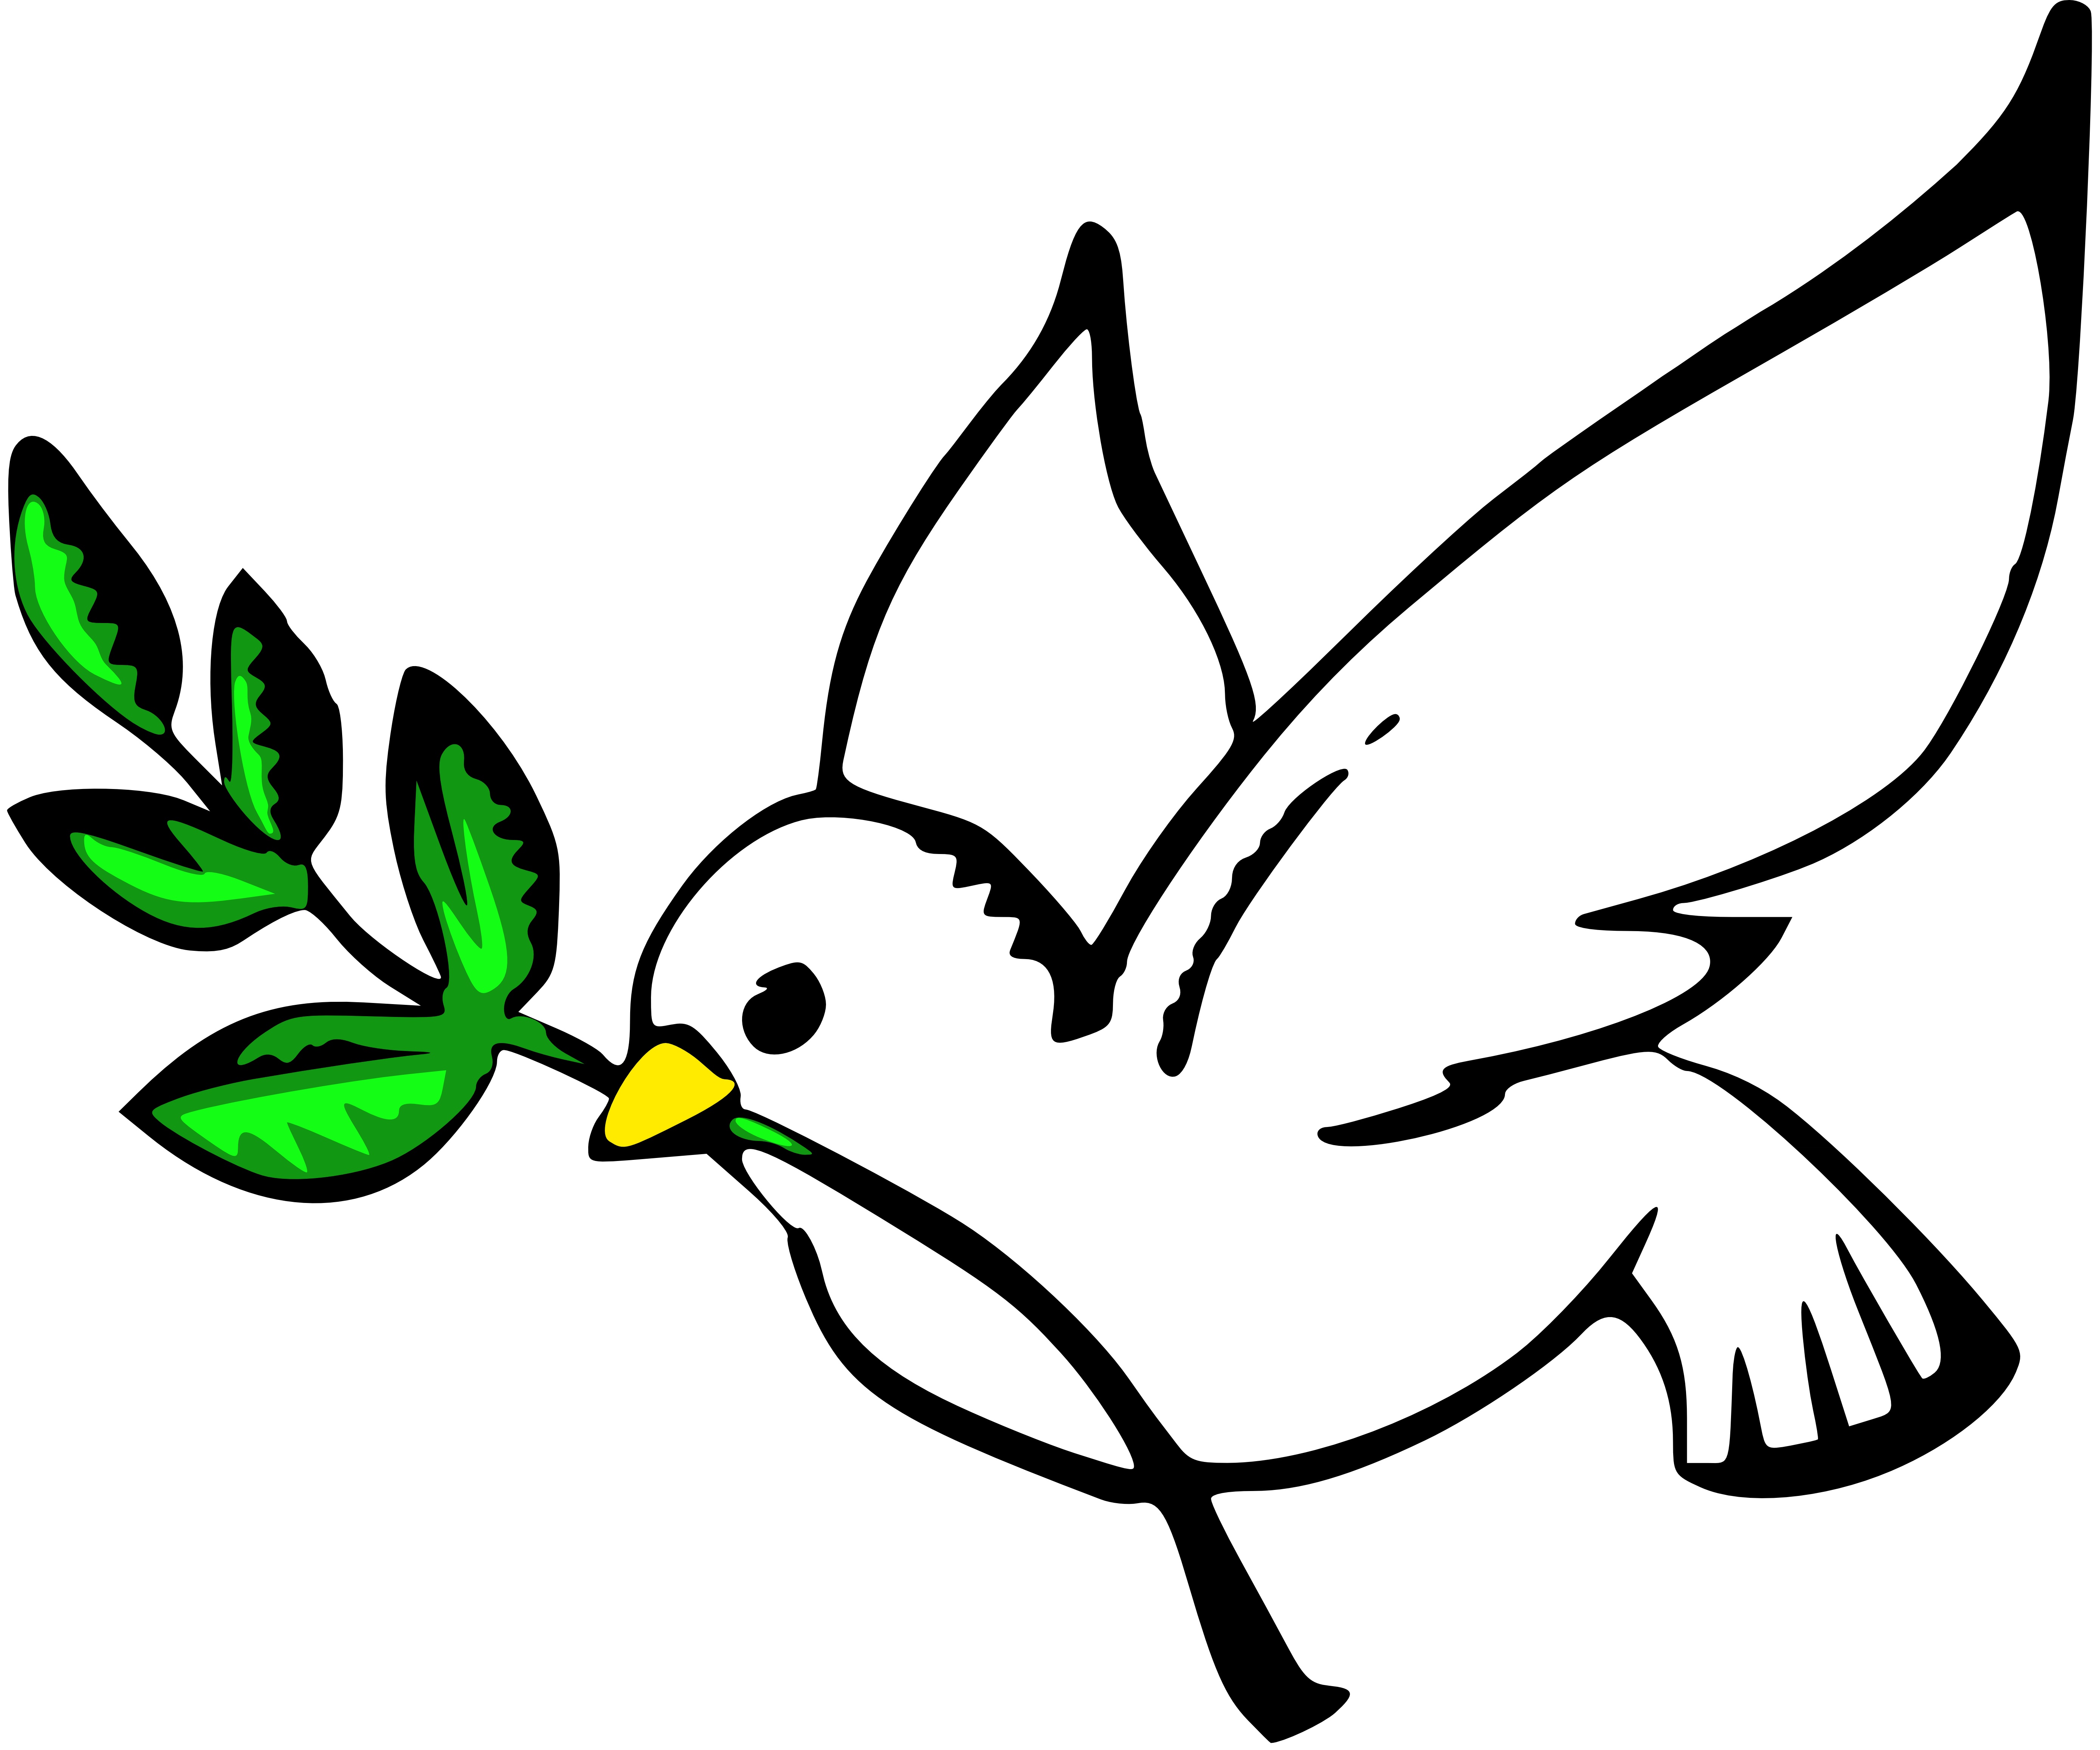 Celebrate day malibu chronicle. Justice clipart peace